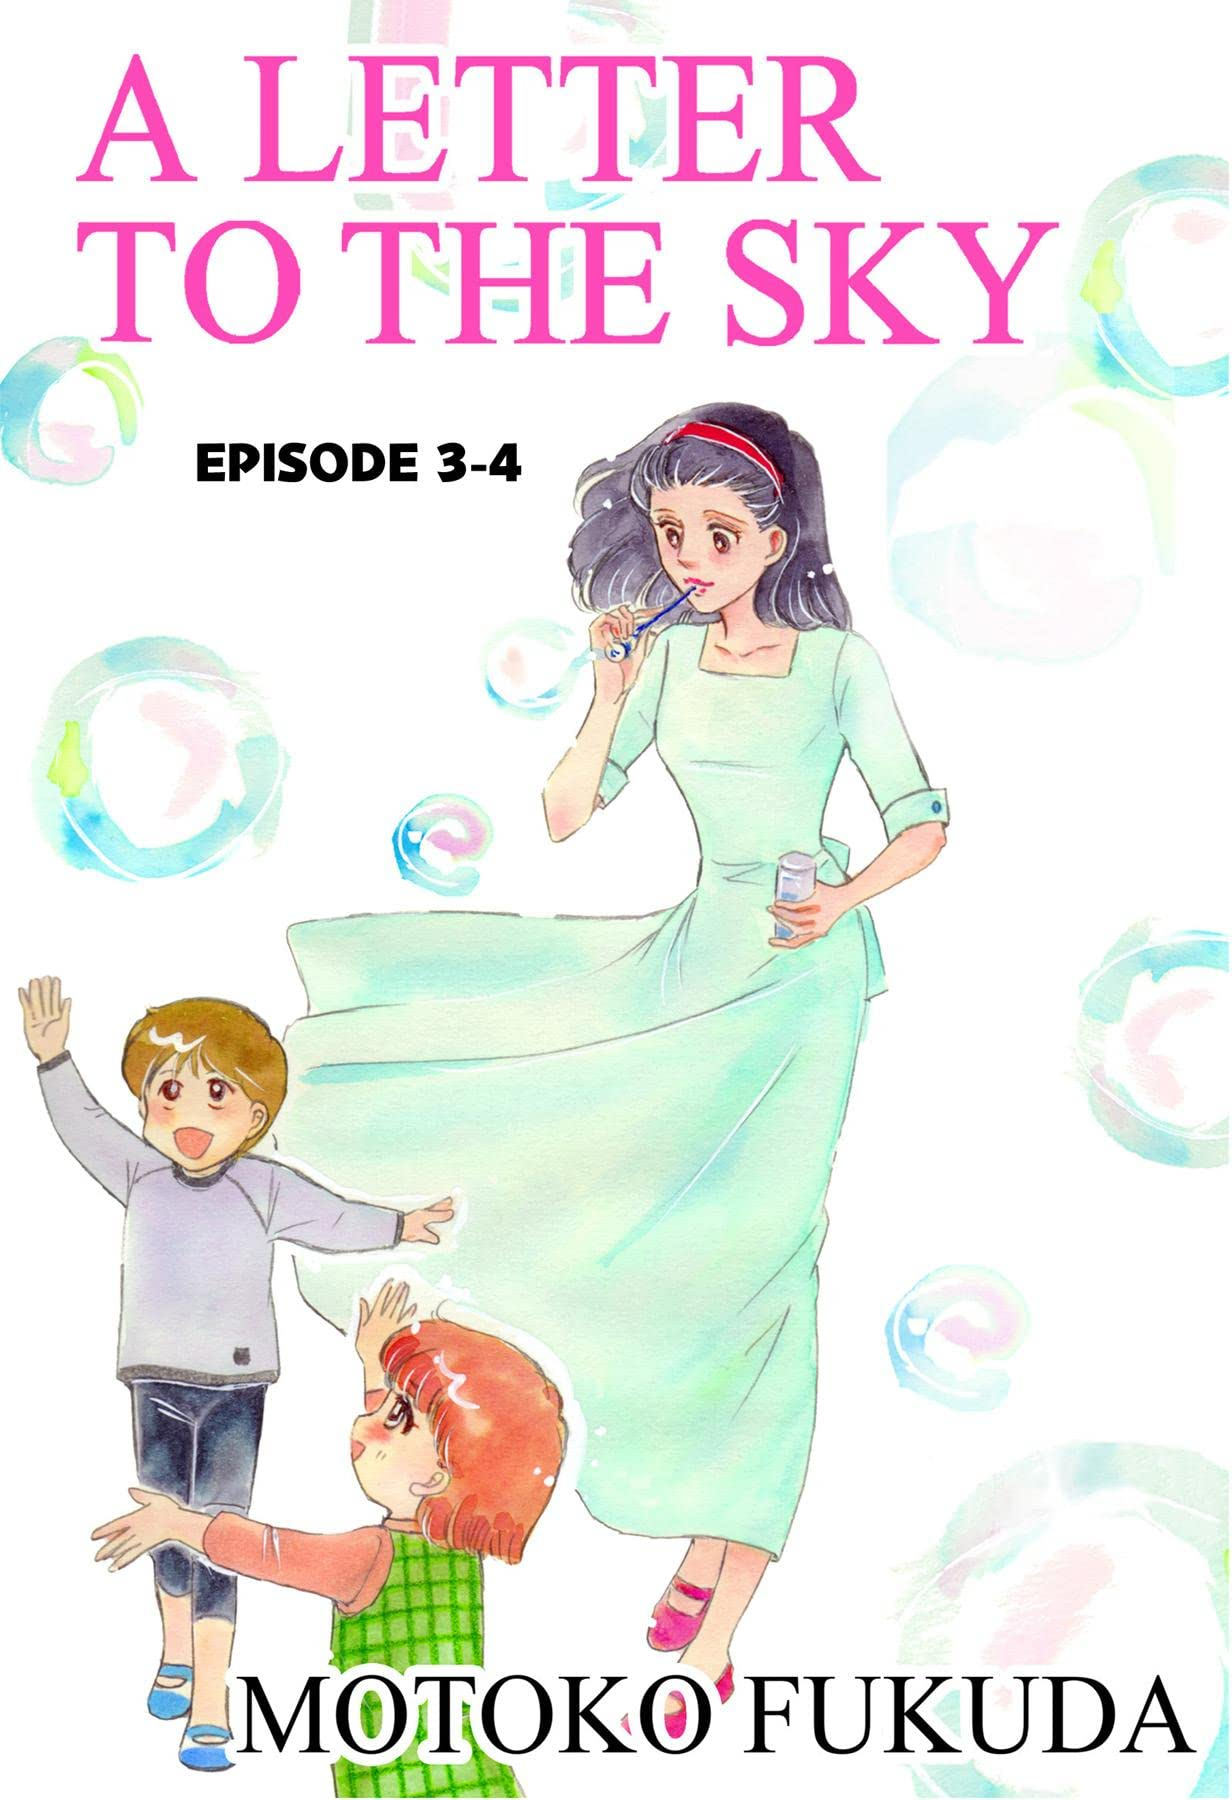 A LETTER TO THE SKY #20